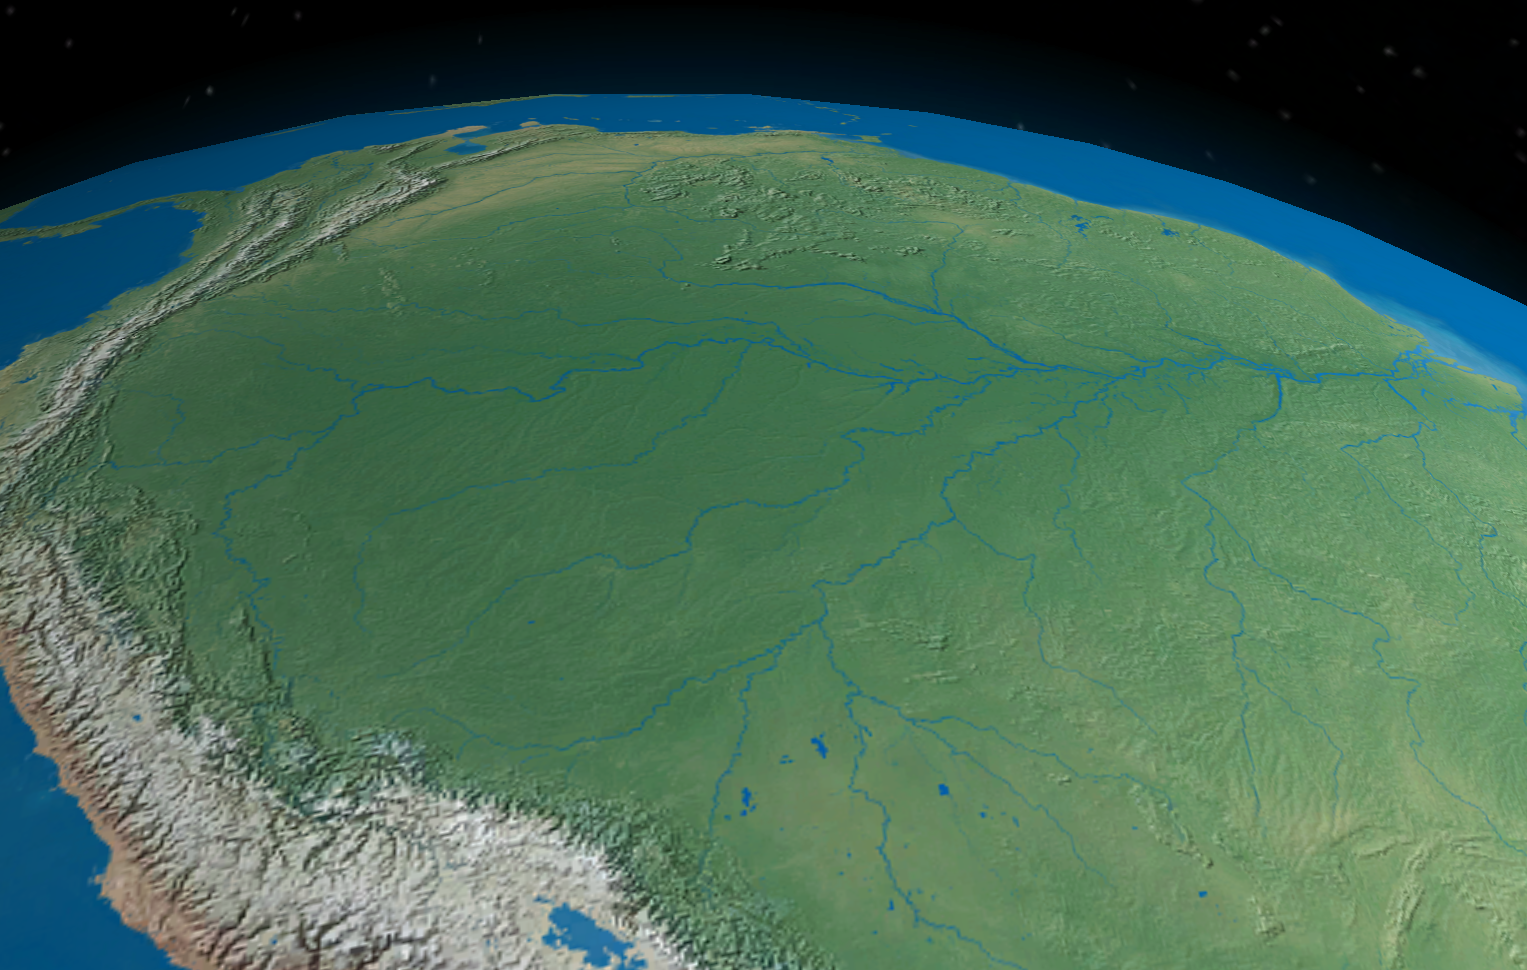 The Amazon Rainforest covers about 6% of the Earth's surface